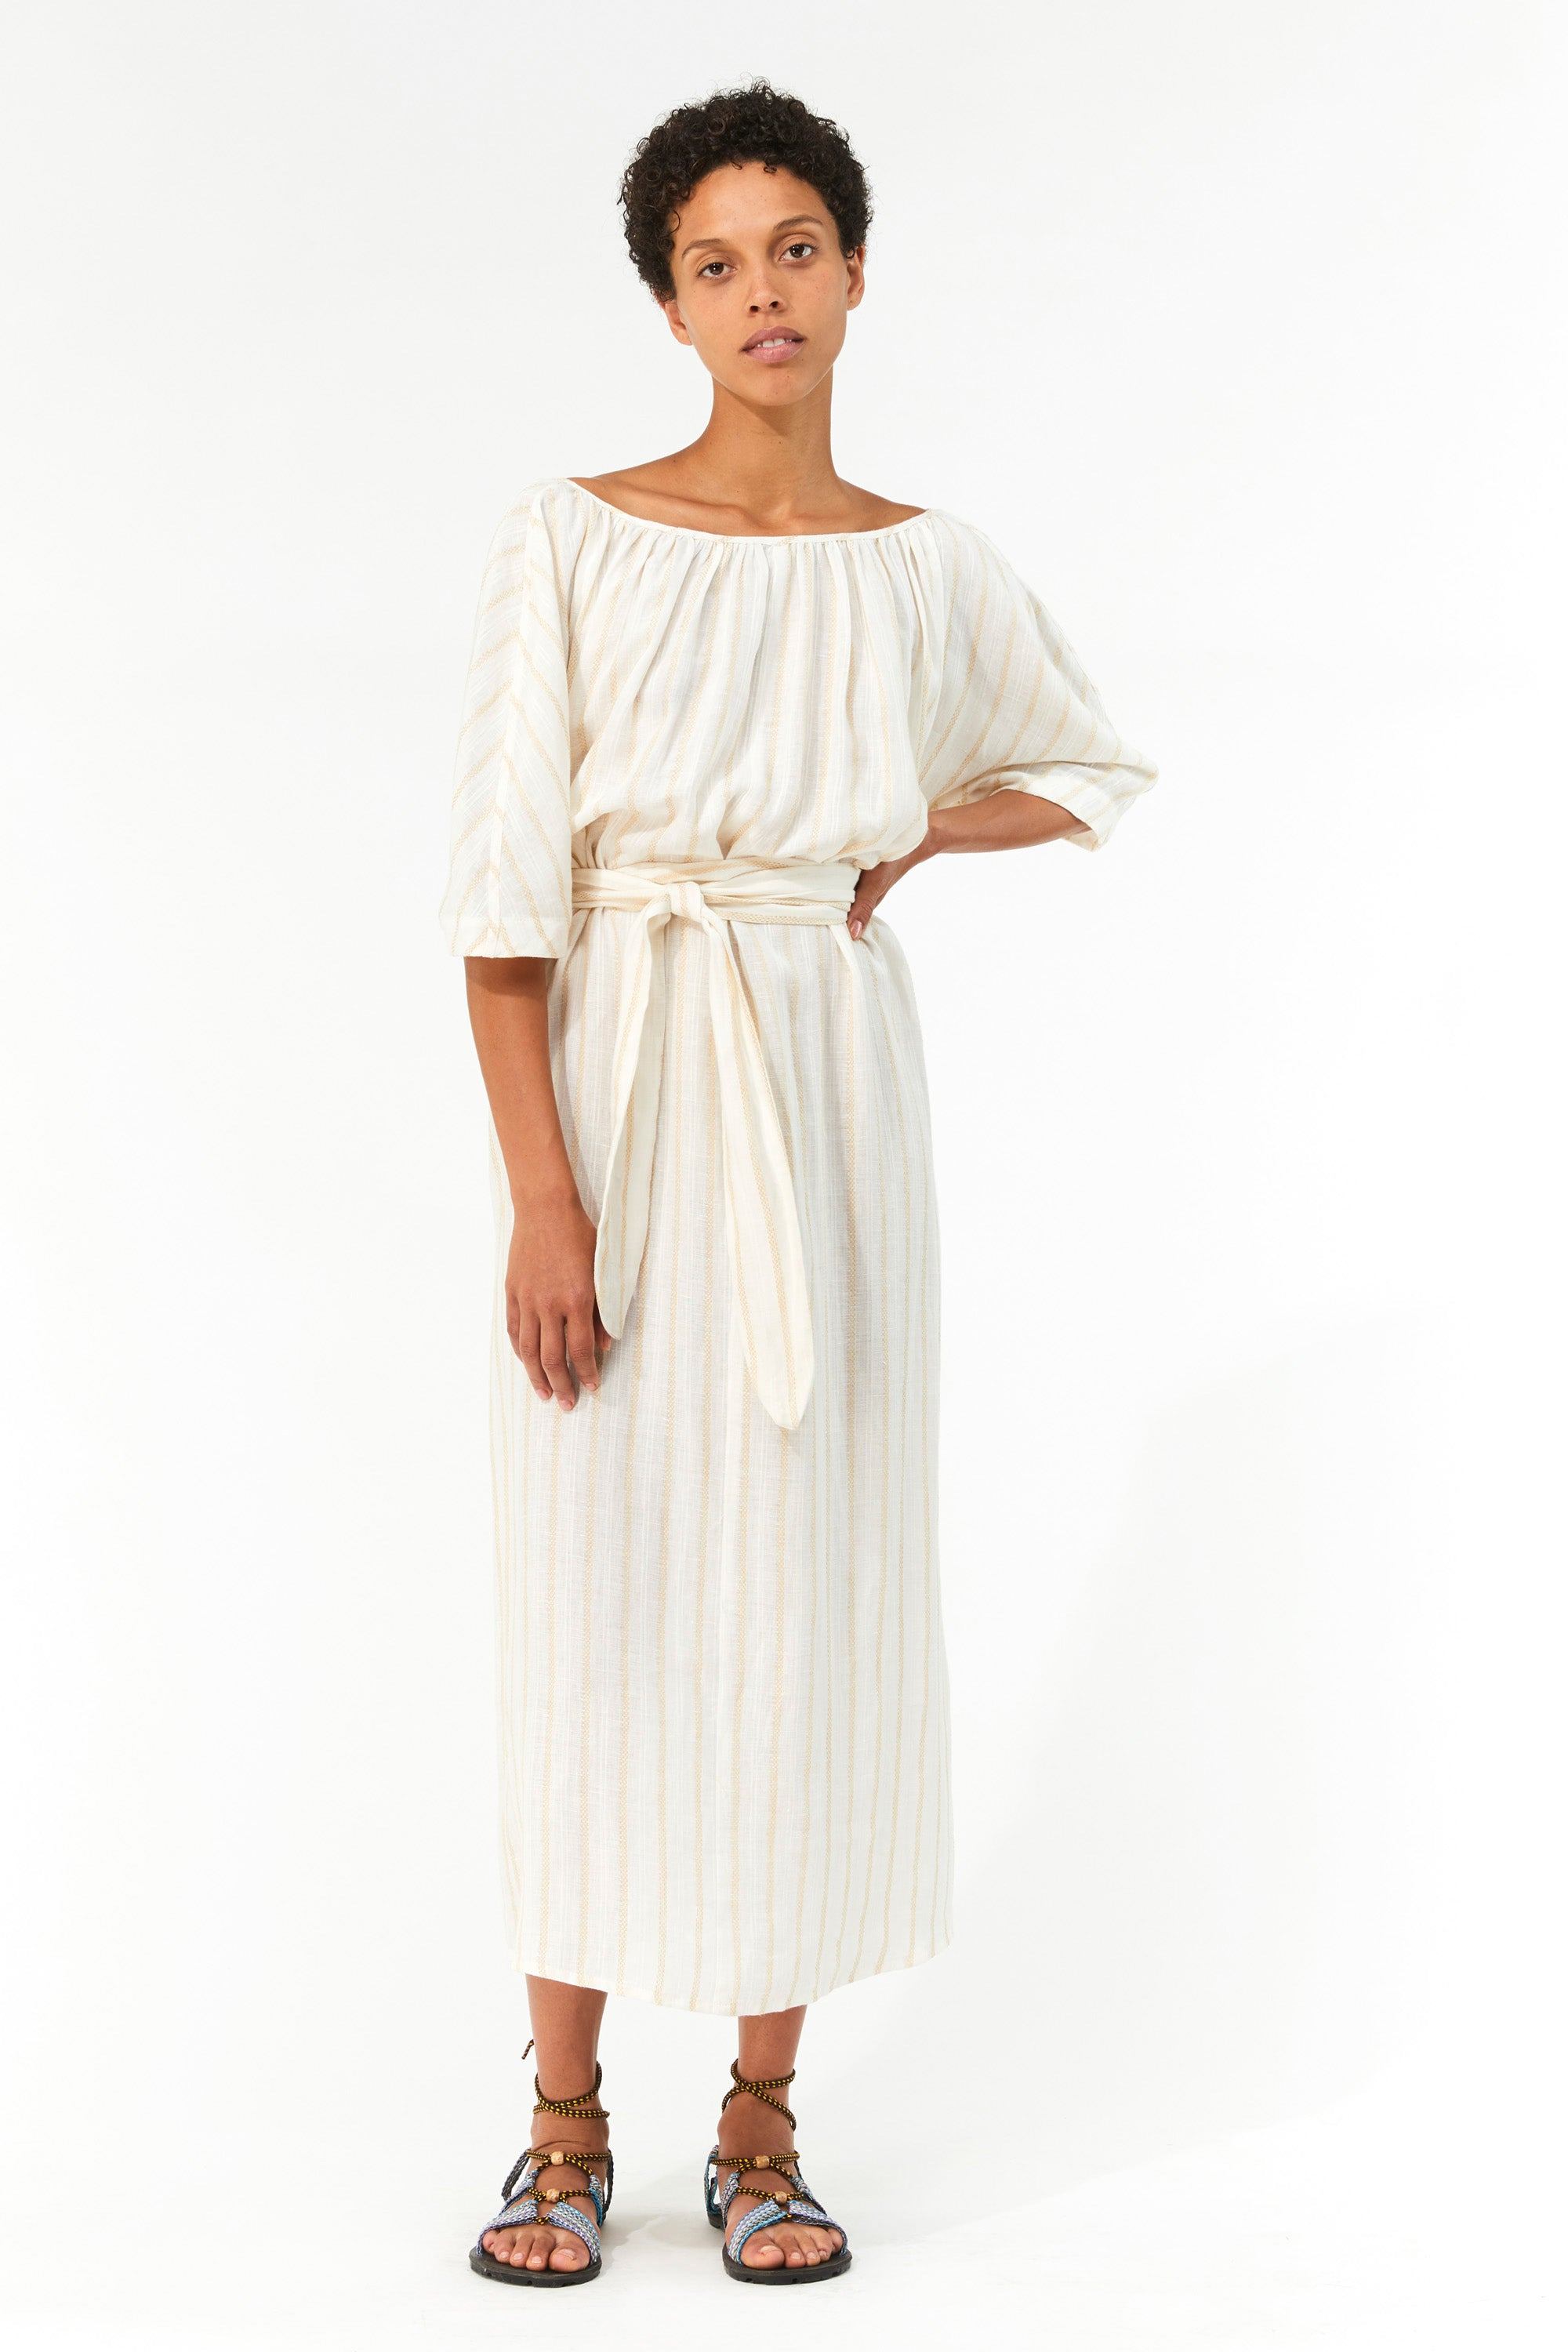 Mara Hoffman Ivory Aliz Dress in linen-Tencel blend (front)